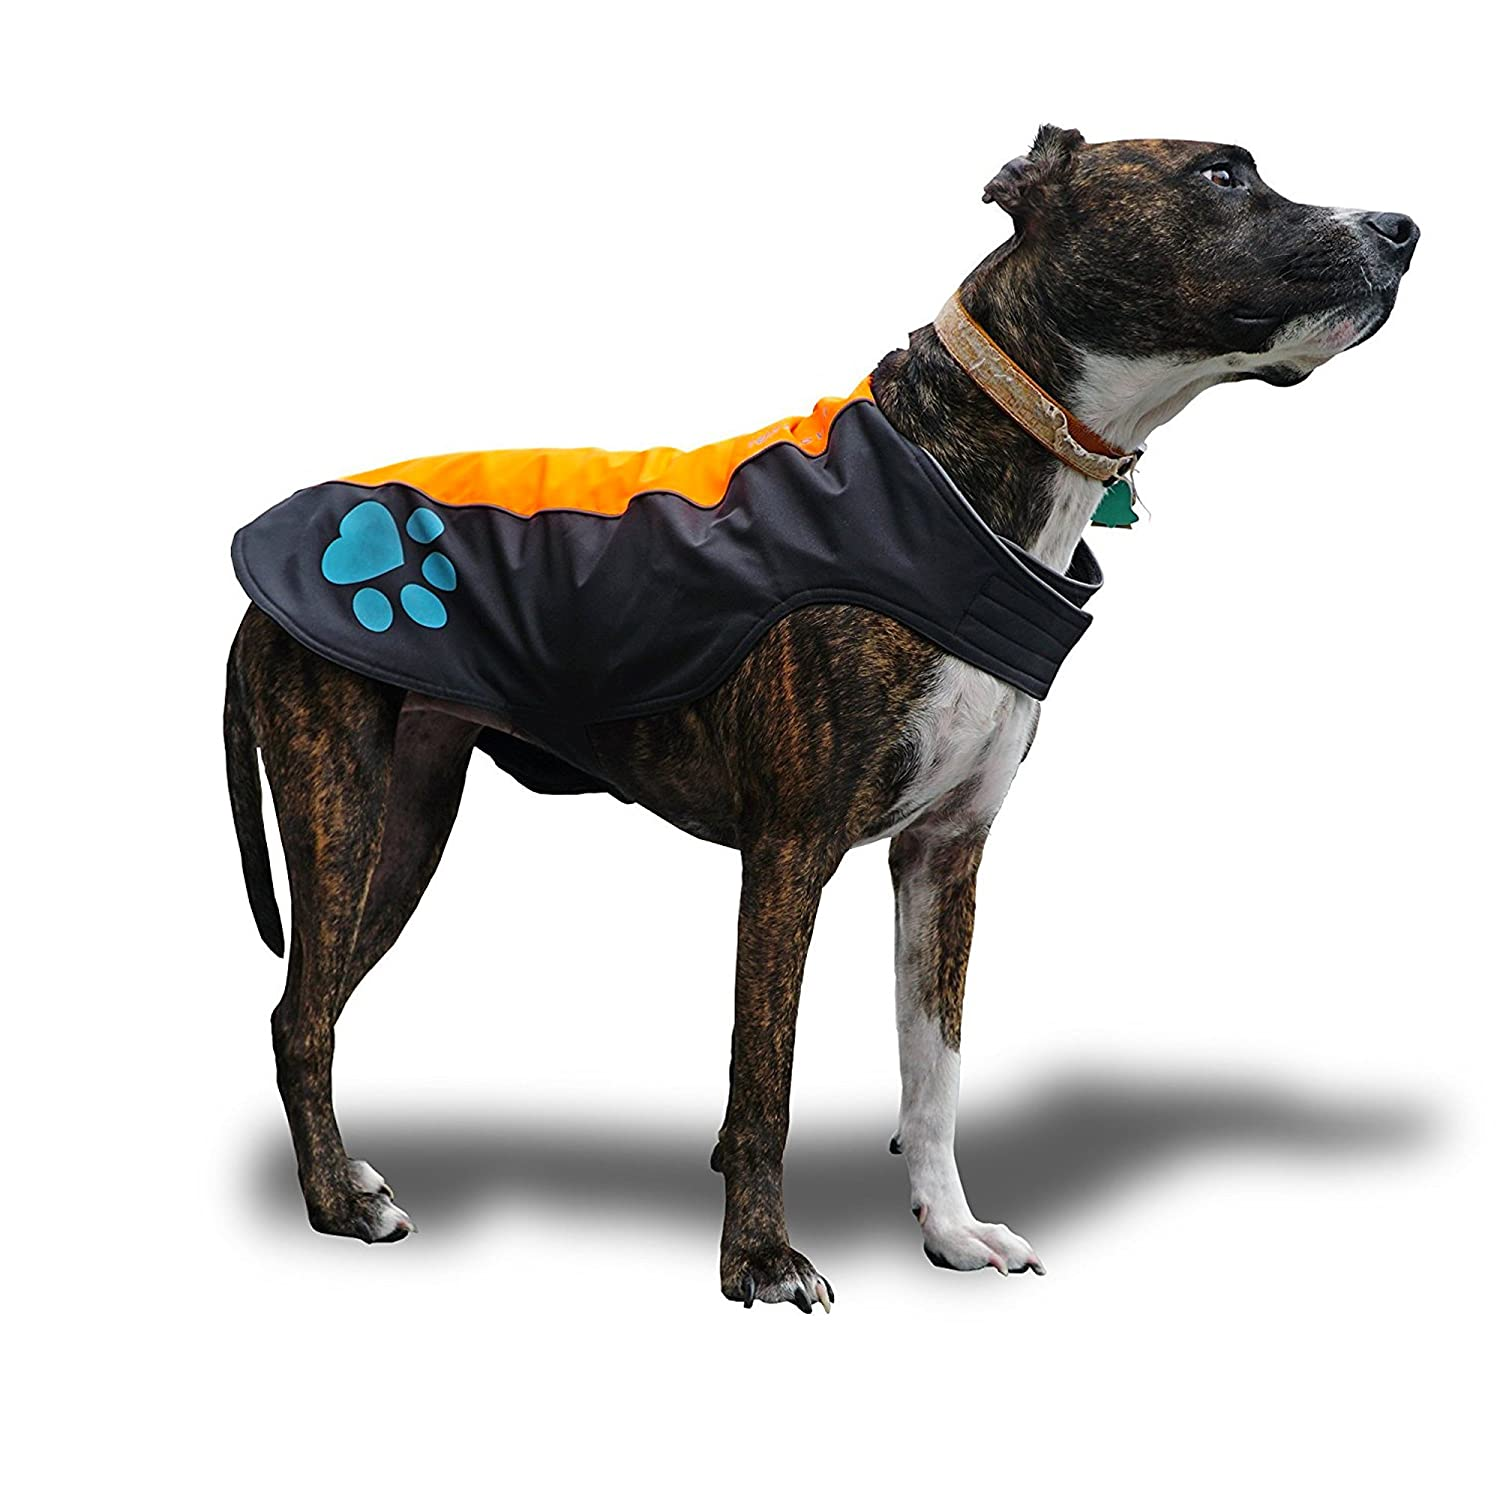 Med Short SafetyPUP XD Dog Coat Waterproof Dog Jacket for Dogs Between 22 lbs and 90 lbs. Hi Visibility Vest with Fleece Inner Lining for Extra Warmth and Predection. Please Take Note of Sizing (Med Short)